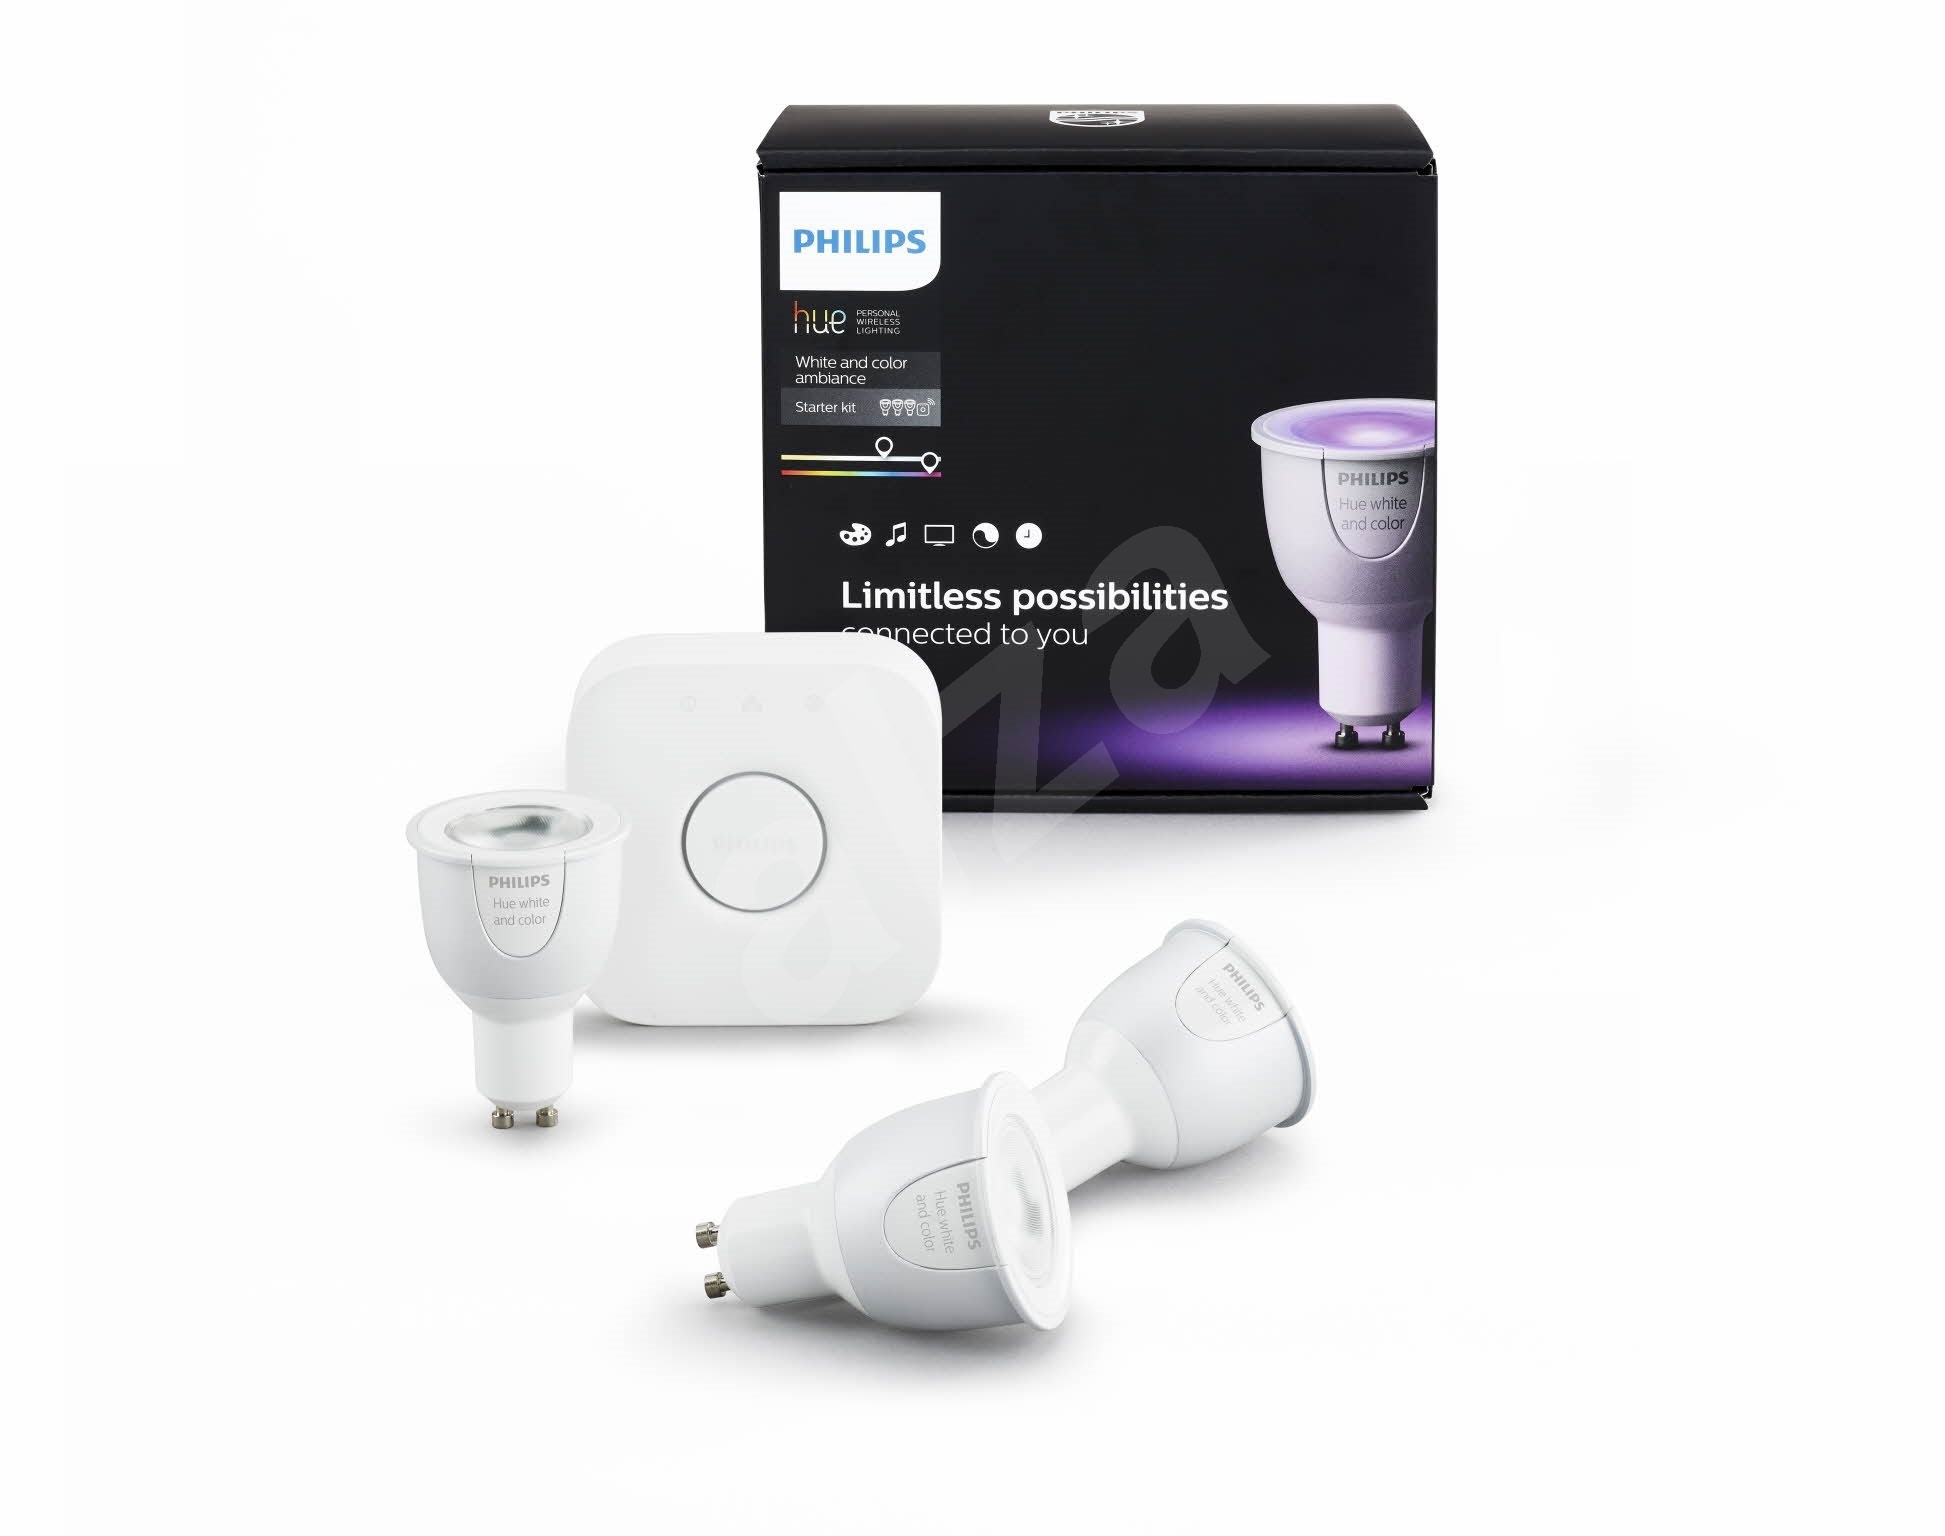 philips hue white and color ambiance gu10 6 5w starter kit. Black Bedroom Furniture Sets. Home Design Ideas